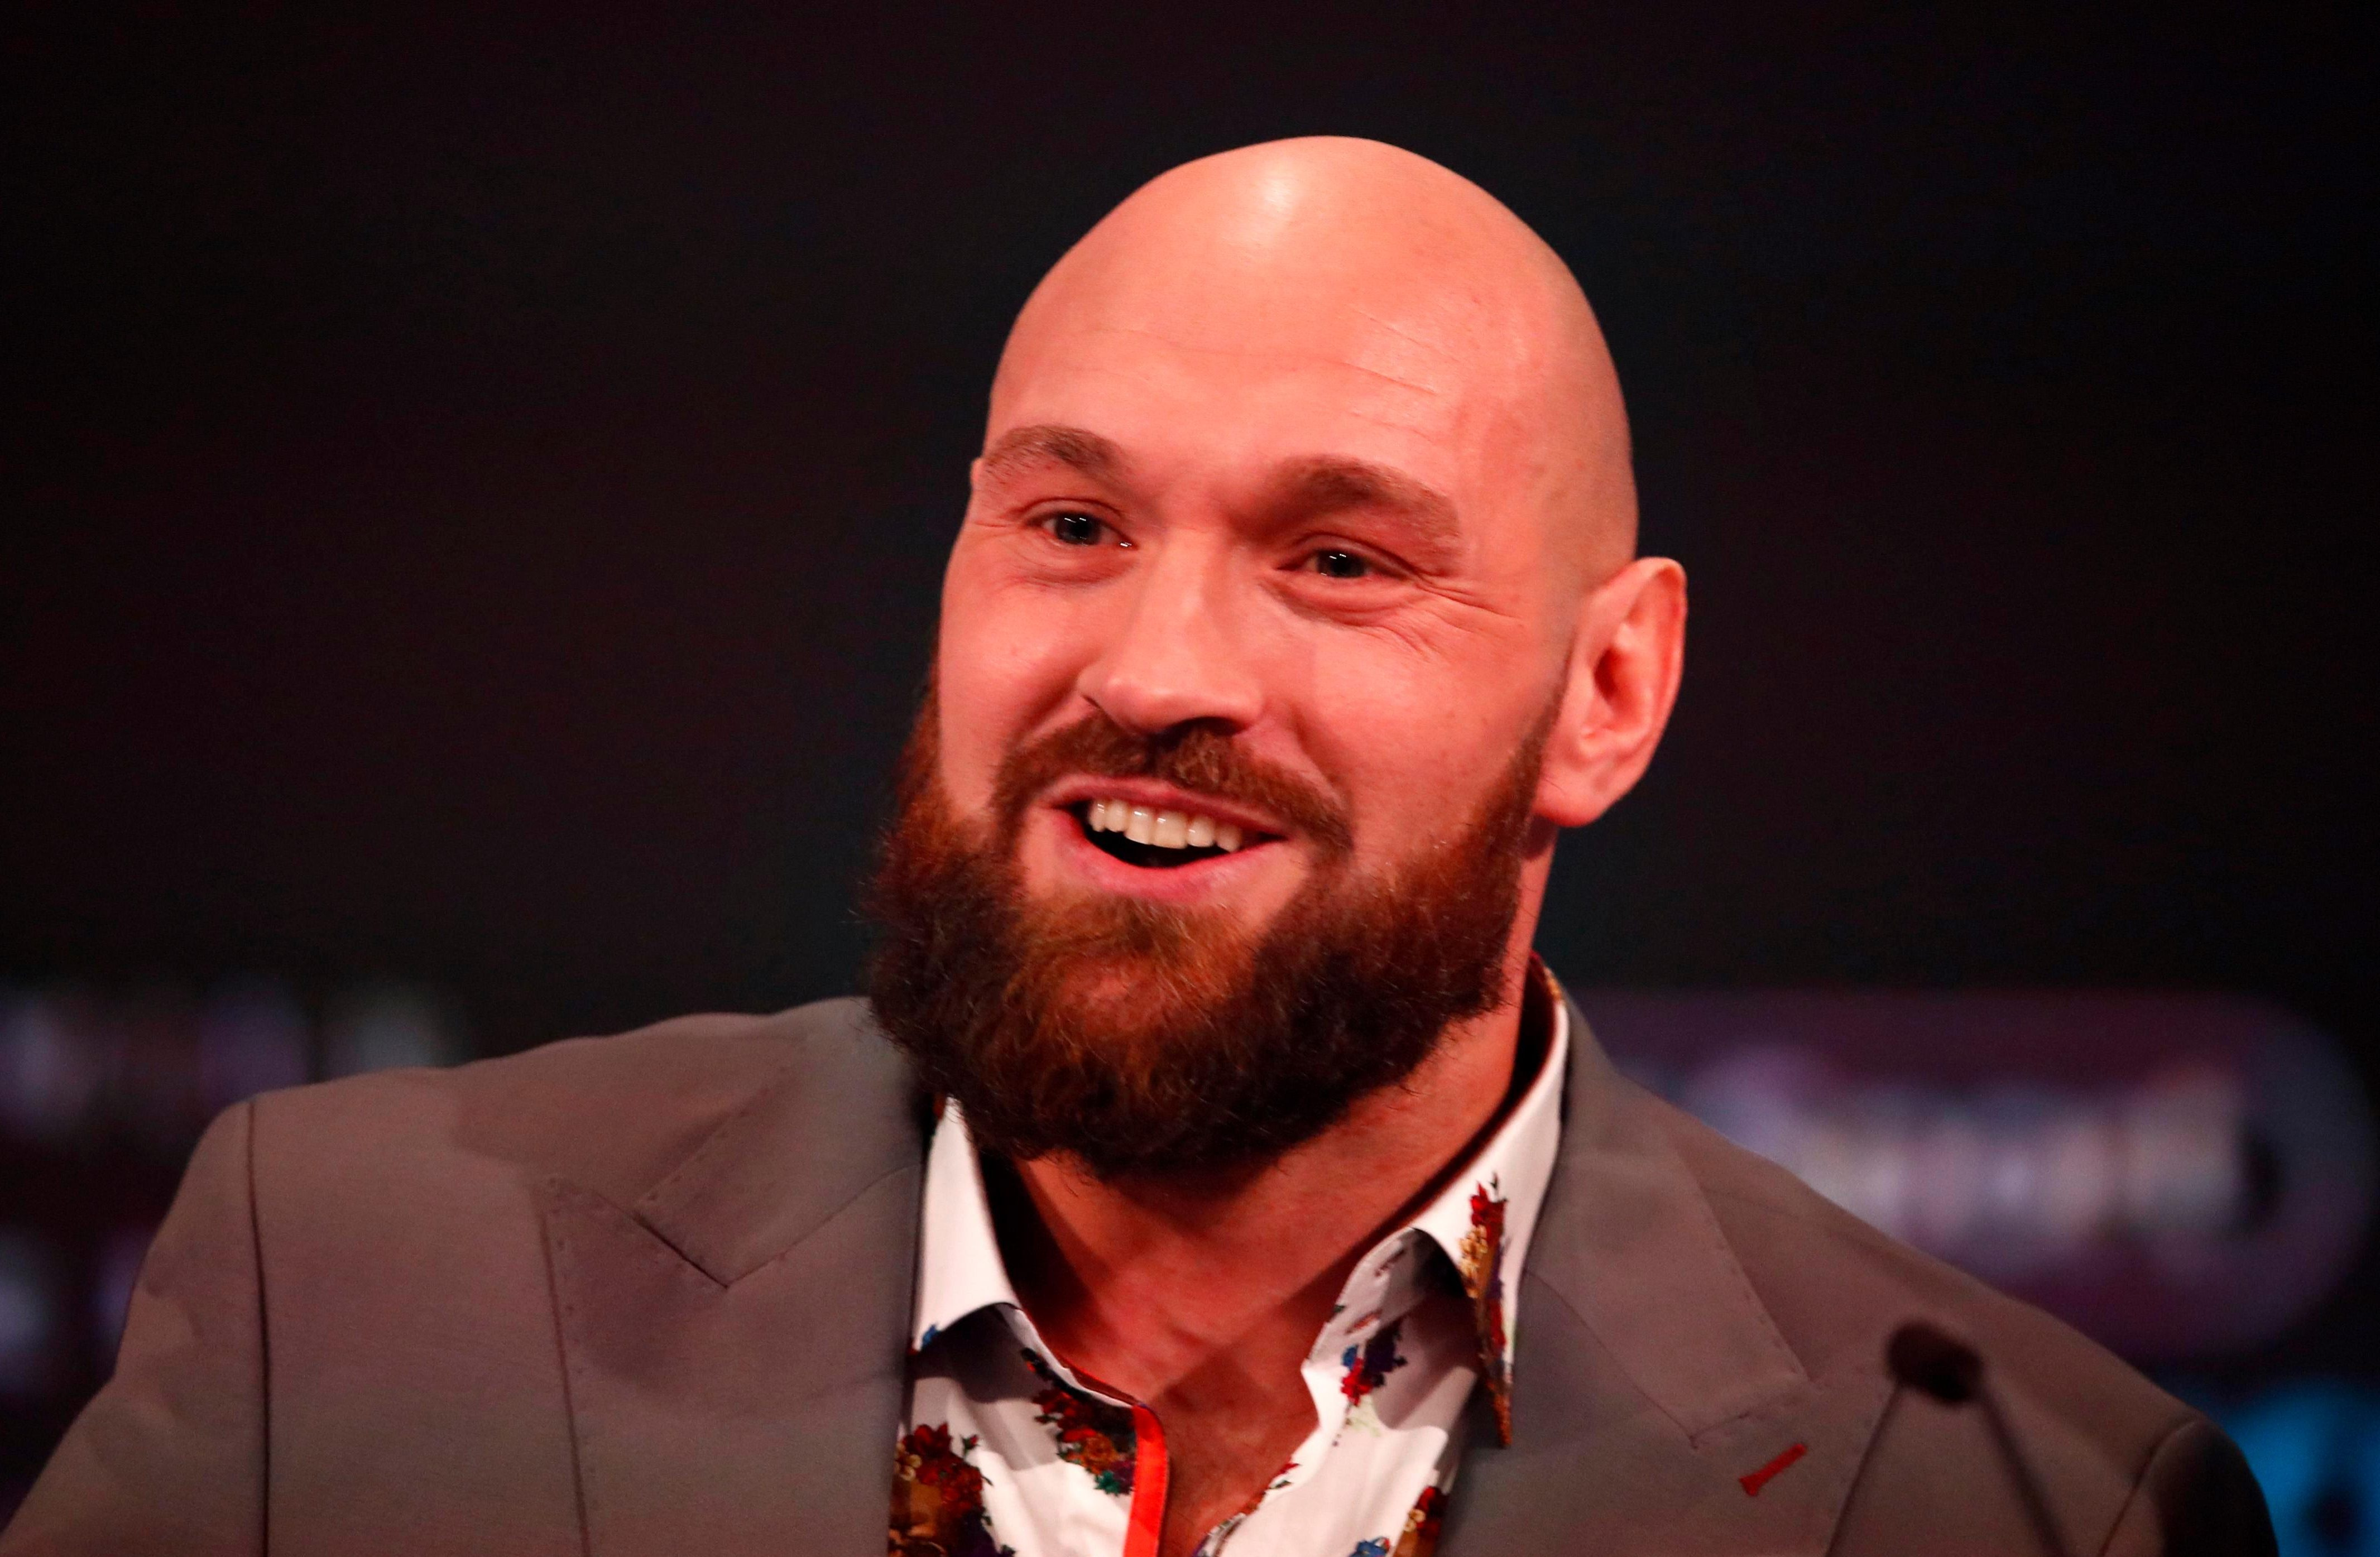 Tyson Fury reacts during a press conference ahead of the match against Deontay Wilde.